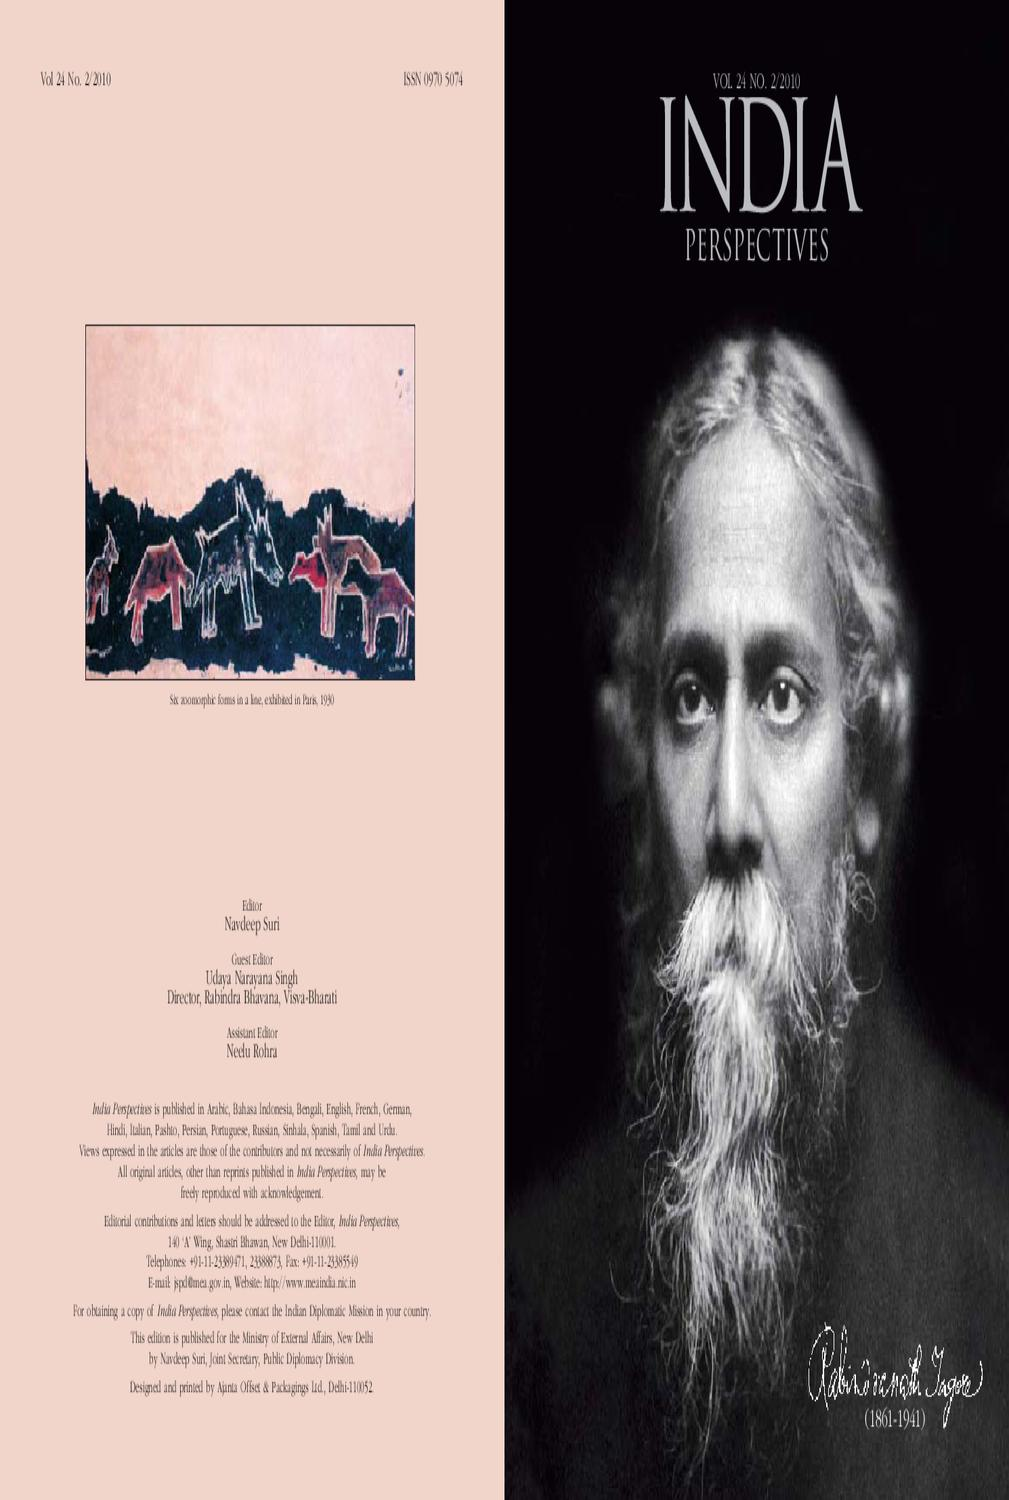 Private High School Admission Essay Examples India Perspectivesspecial Issue On Rn Tagore By Indian Diplomacy  Issuu Political Science Essay also Healthy Diet Essay India Perspectivesspecial Issue On Rn Tagore By Indian Diplomacy  Teaching Essay Writing High School